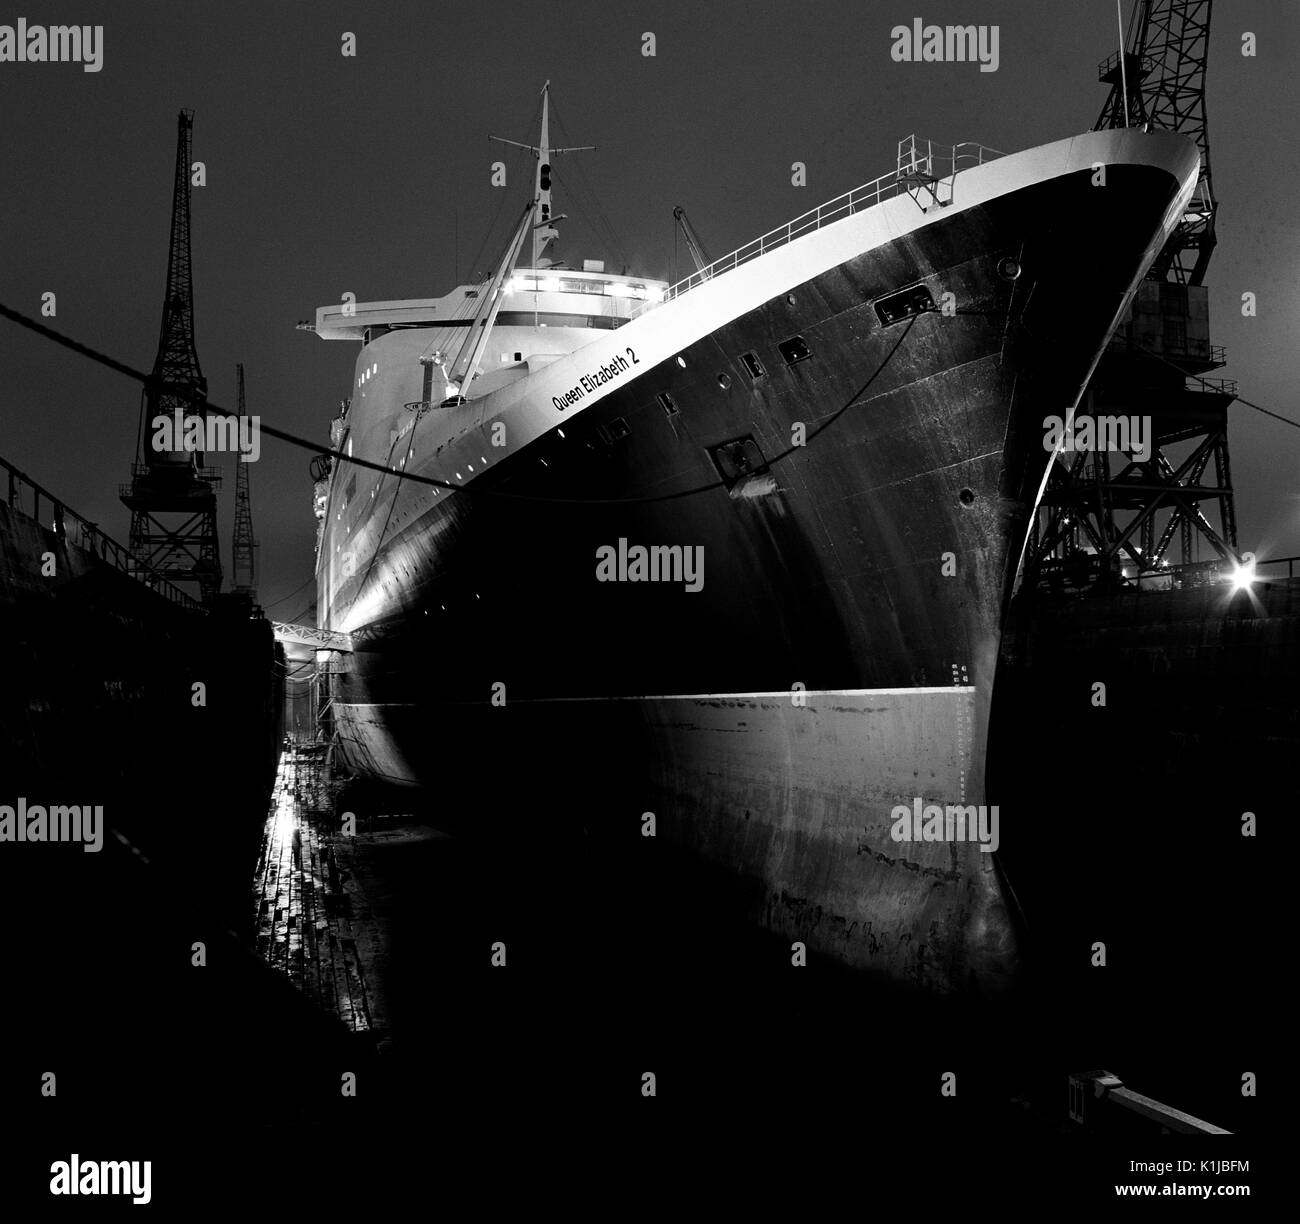 Night photograph of QE2 in the King George V dry dock at Southampton Docks, Southampton, Hampshire, England, where she is having helicopter landing pads fitted for service in the Falklands War - May 1982 - Stock Image